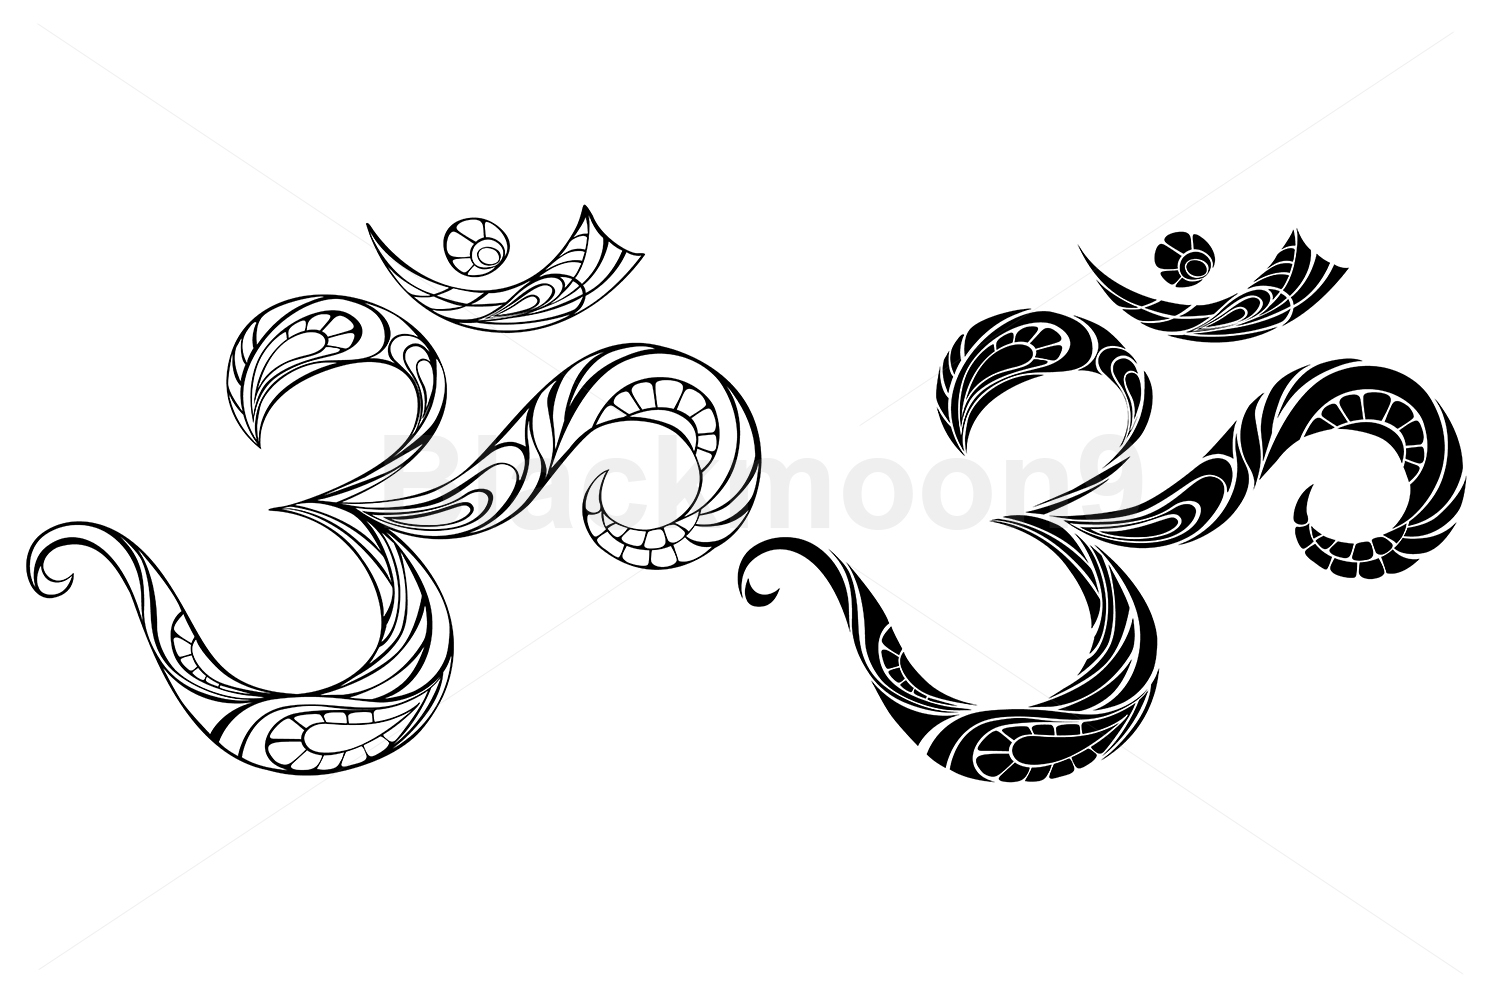 Download Free Contour Symbol Om Graphic By Blackmoon9 Creative Fabrica for Cricut Explore, Silhouette and other cutting machines.